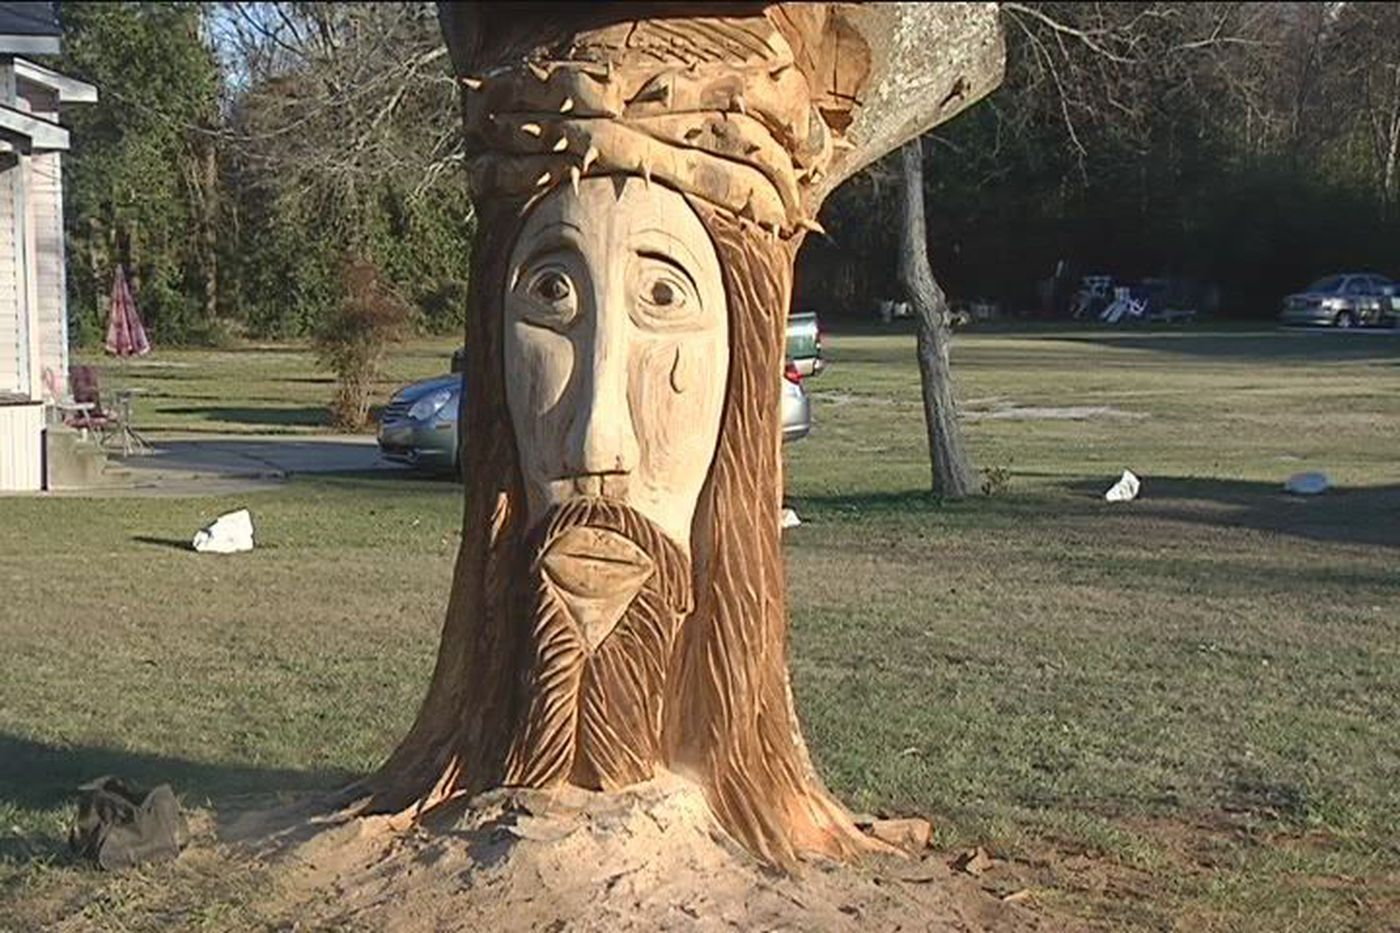 Wood carving from a dead tree stump in lido park in droitwich